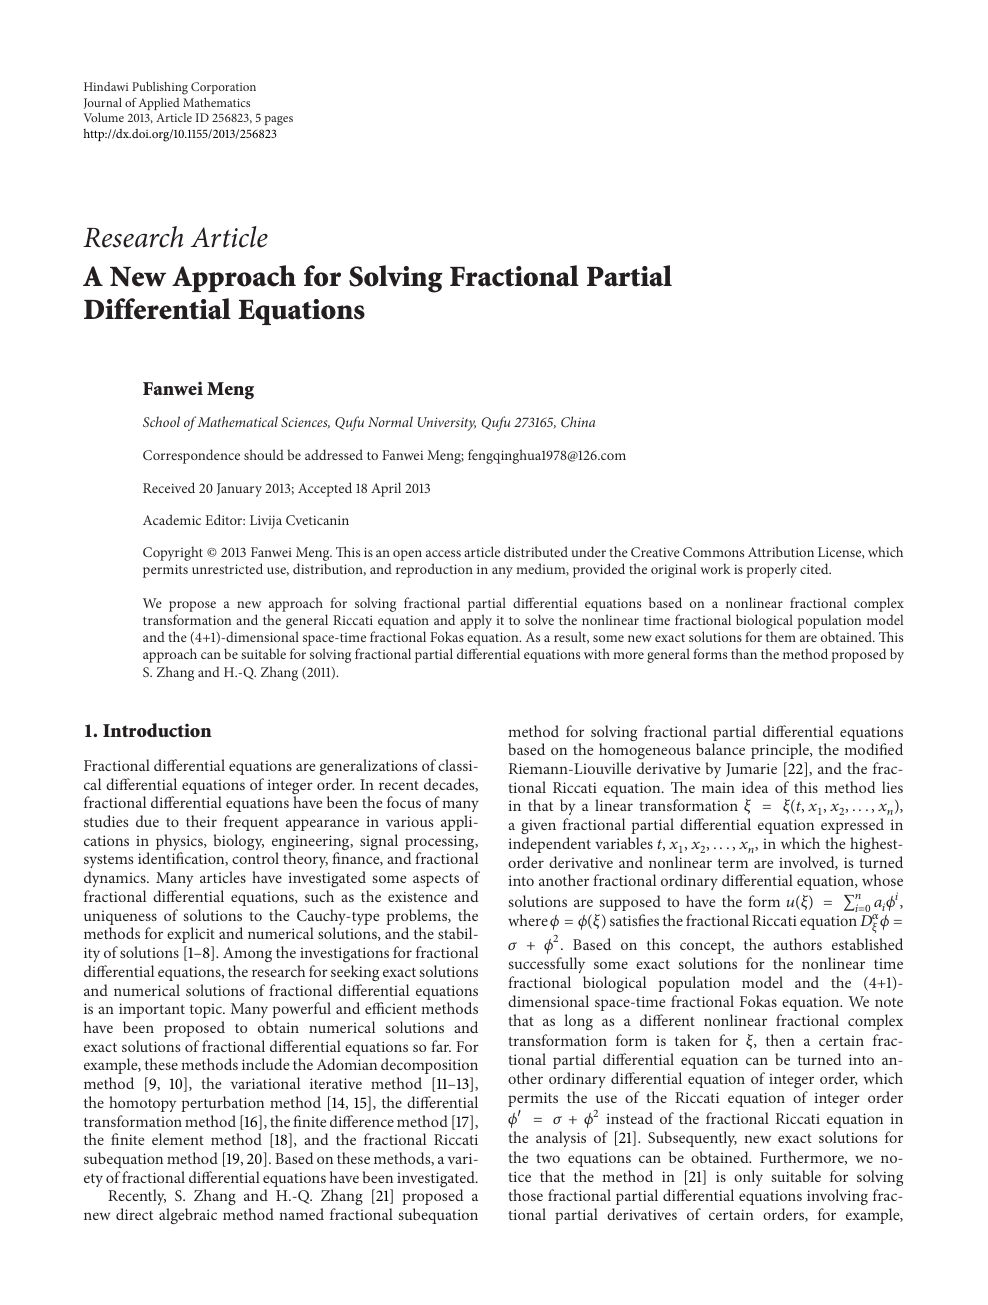 A New Approach for Solving Fractional Partial Differential Equations